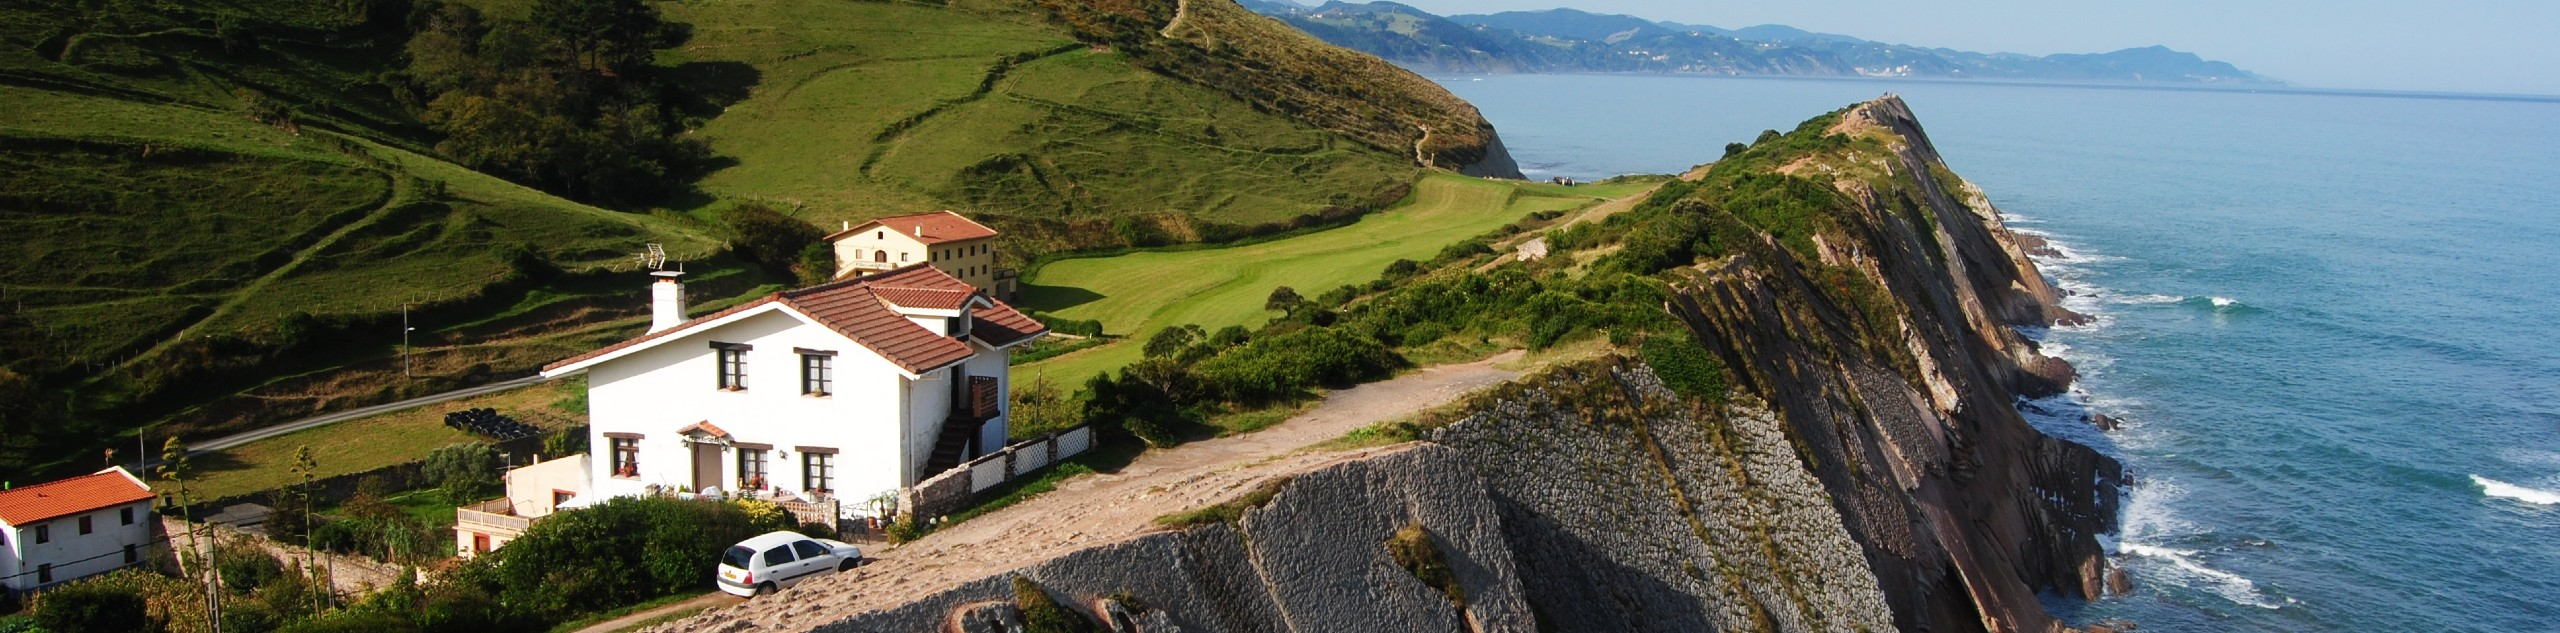 Rugged coastline at Basque country in Spain